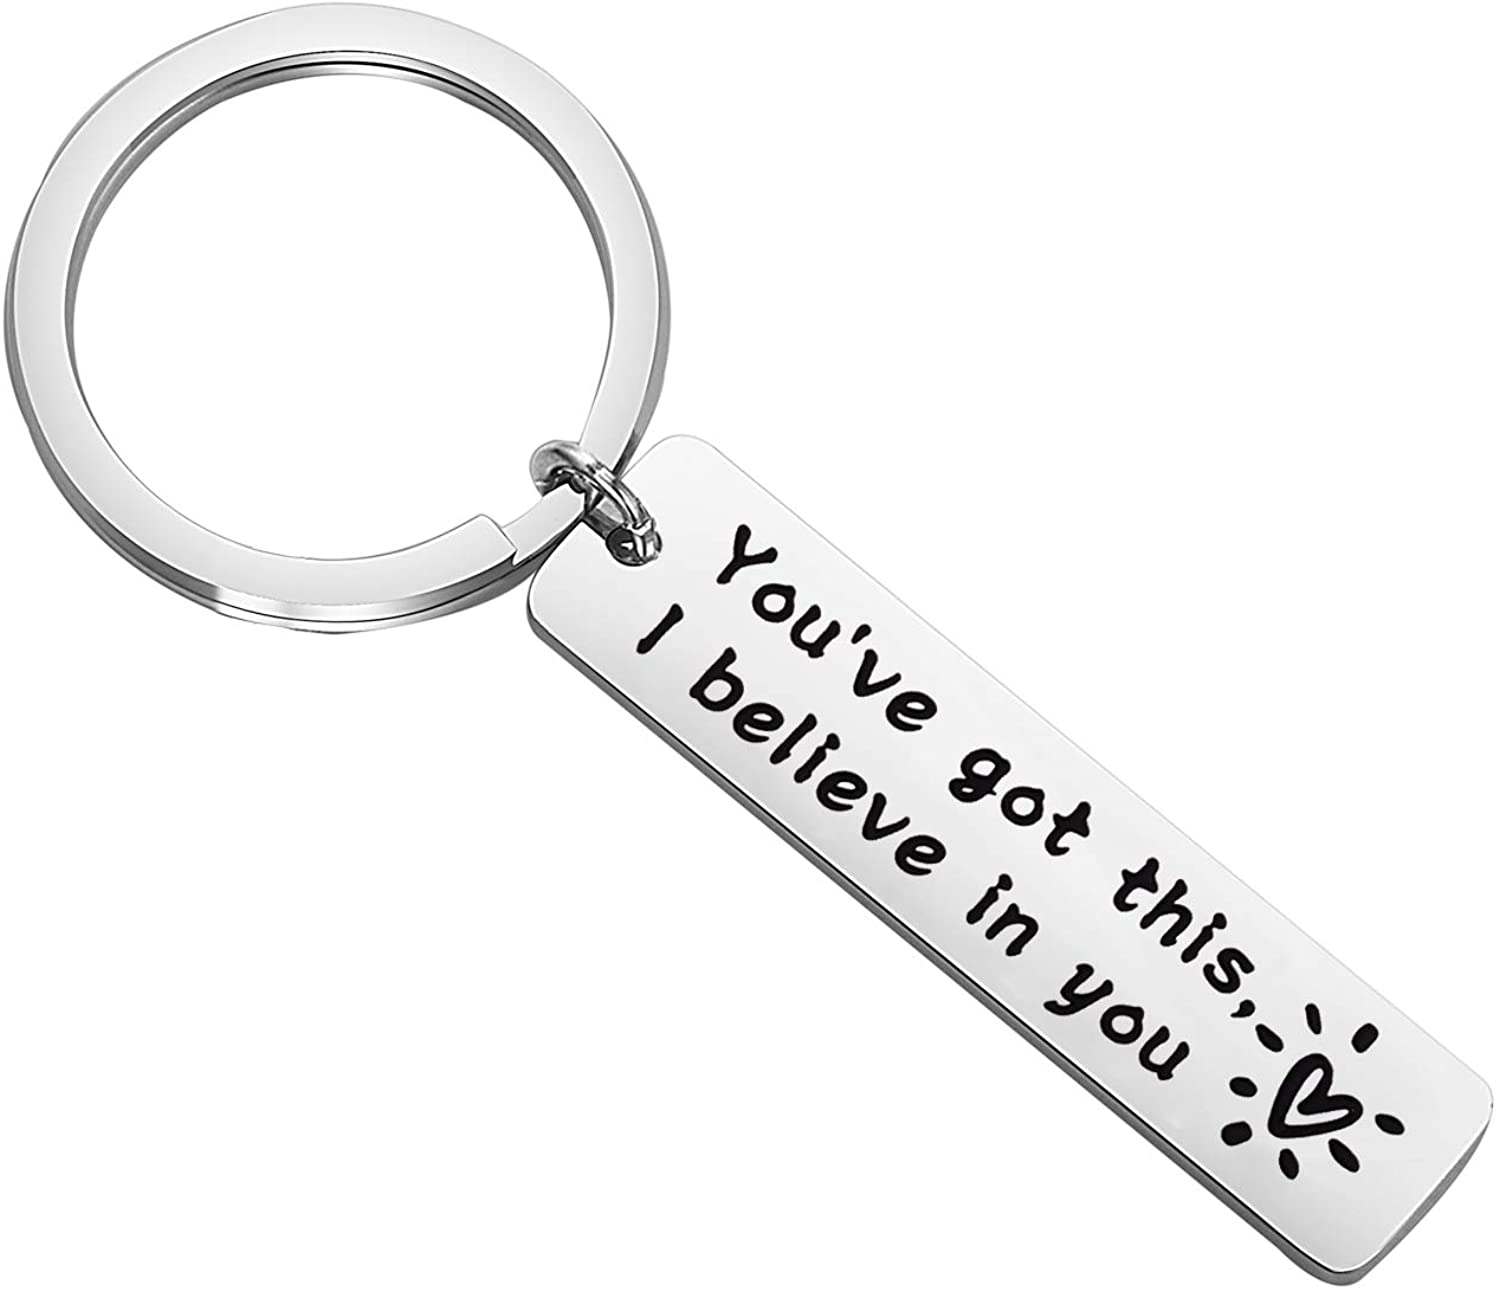 BNQL I Believe in You Keychain You Have Got This Keychain Inspirational Sobriety Gift